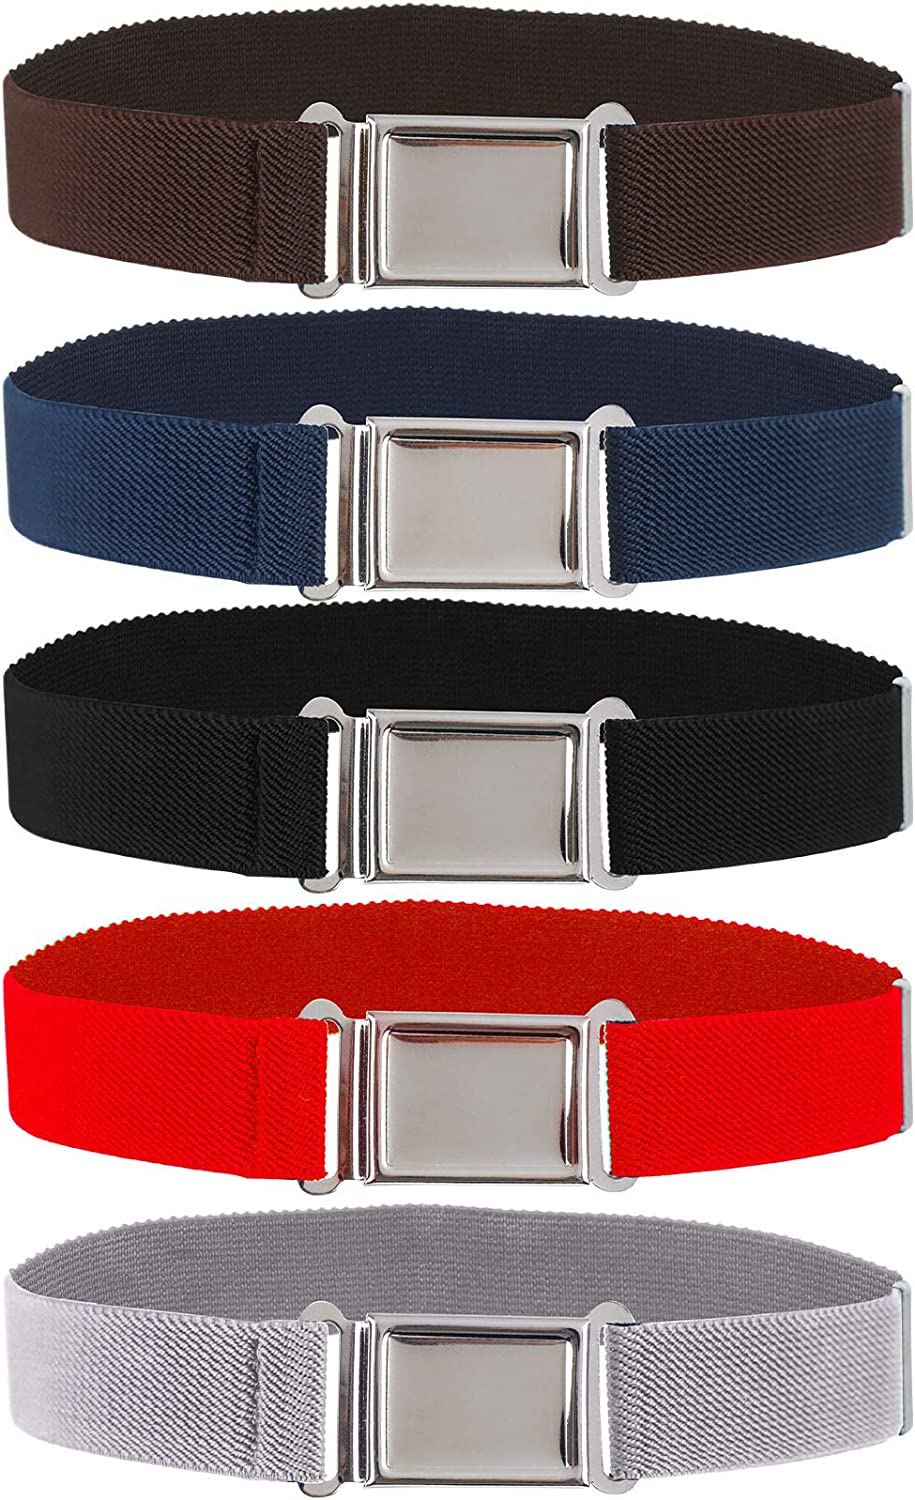 5 Pieces Kids Magnetic Belt Adjustable Fashion Belt with Magnetic Buckle for Boys and Gilrs